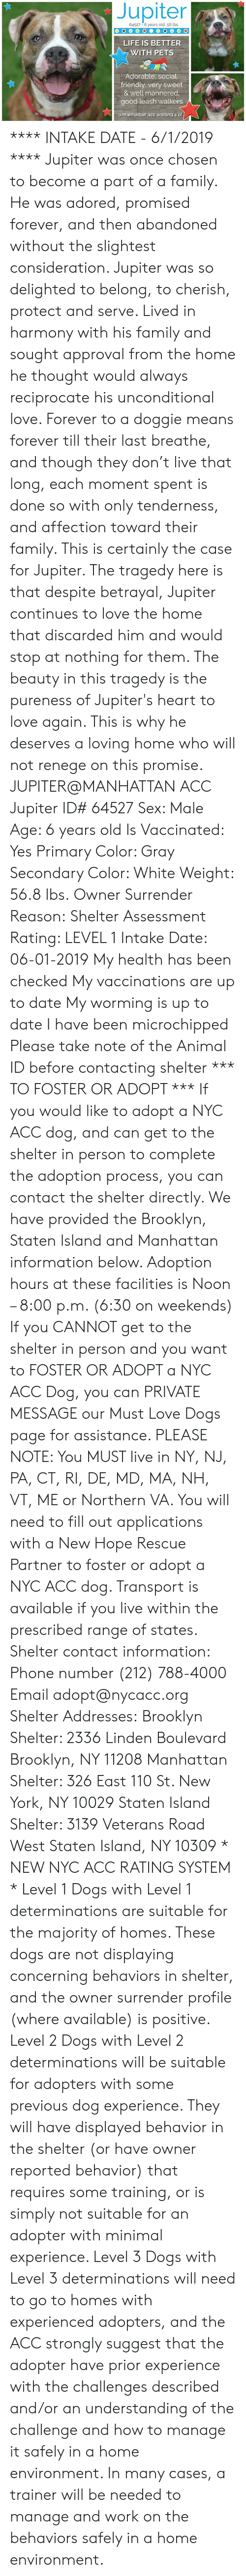 Dogs, Family, and Life: Jupiter  64527 6 years old, 56 lbs  LIFE IS BETTER  WITH PETS  Adorable, social,  friendly, very sweet  & well mannered  good leash walkers  amanhattan acc waiting 4 u! **** INTAKE DATE - 6/1/2019 ****  Jupiter was once chosen to become a part of a family. He was adored, promised forever, and then abandoned without the slightest consideration. Jupiter was so delighted to belong, to cherish, protect and serve. Lived in harmony with his family and sought approval from the home he thought would always reciprocate his unconditional love. Forever to a doggie means forever till their last breathe, and though they don't live that long, each moment spent is done so with only tenderness, and affection toward their family. This is certainly the case for Jupiter. The tragedy here is that despite betrayal, Jupiter continues to love the home that discarded him and would stop at nothing for them. The beauty in this tragedy is the pureness of Jupiter's heart to love again. This is why he deserves a loving home who will not renege on this promise.  JUPITER@MANHATTAN ACC Jupiter ID# 64527  Sex: Male Age: 6 years old Is Vaccinated: Yes Primary Color: Gray Secondary Color: White Weight: 56.8 lbs. Owner Surrender Reason: Shelter Assessment Rating: LEVEL 1 Intake Date: 06-01-2019  My health has been checked My vaccinations are up to date My worming is up to date I have been microchipped Please take note of the Animal ID before contacting shelter    *** TO FOSTER OR ADOPT ***   If you would like to adopt a NYC ACC dog, and can get to the shelter in person to complete the adoption process, you can contact the shelter directly. We have provided the Brooklyn, Staten Island and Manhattan information below. Adoption hours at these facilities is Noon – 8:00 p.m. (6:30 on weekends)  If you CANNOT get to the shelter in person and you want to FOSTER OR ADOPT a NYC ACC Dog, you can PRIVATE MESSAGE our Must Love Dogs page for assistance. PLEASE NOTE: You MUST live in NY, NJ,